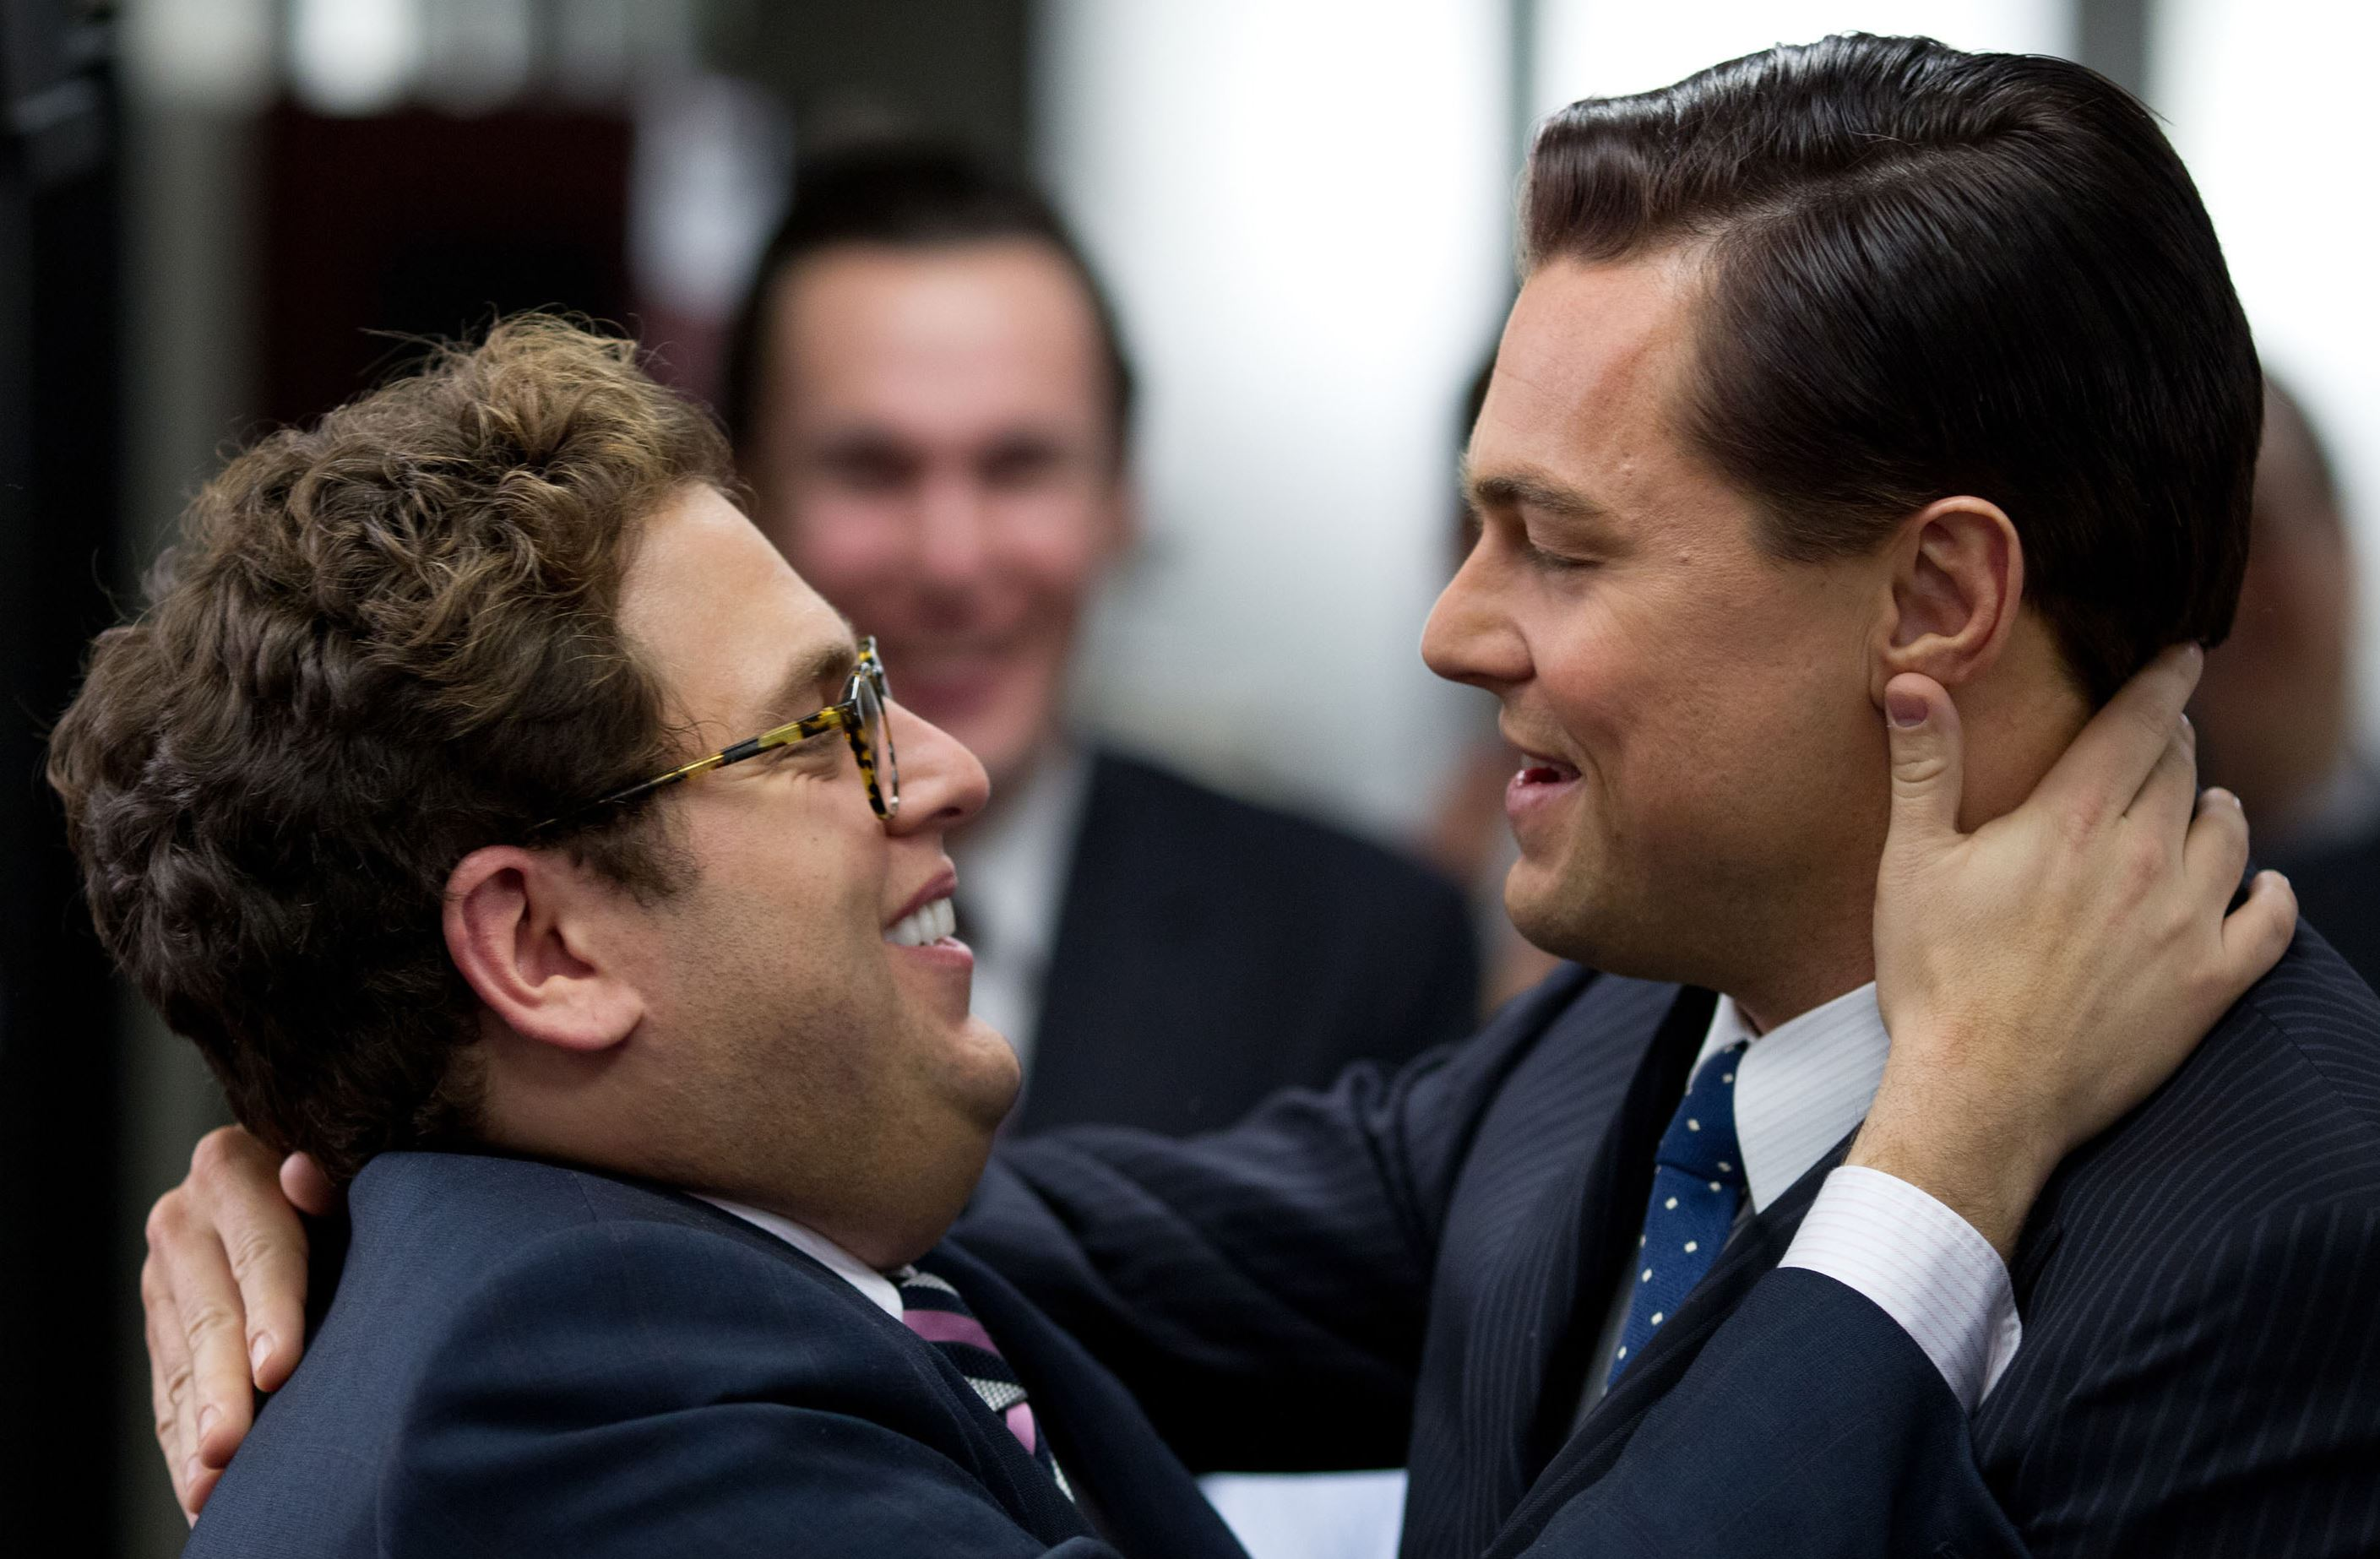 a review of the film wall street If you're looking for a good, entertaining film that makes insider trading an interesting subject for a film, then wall street is that film.